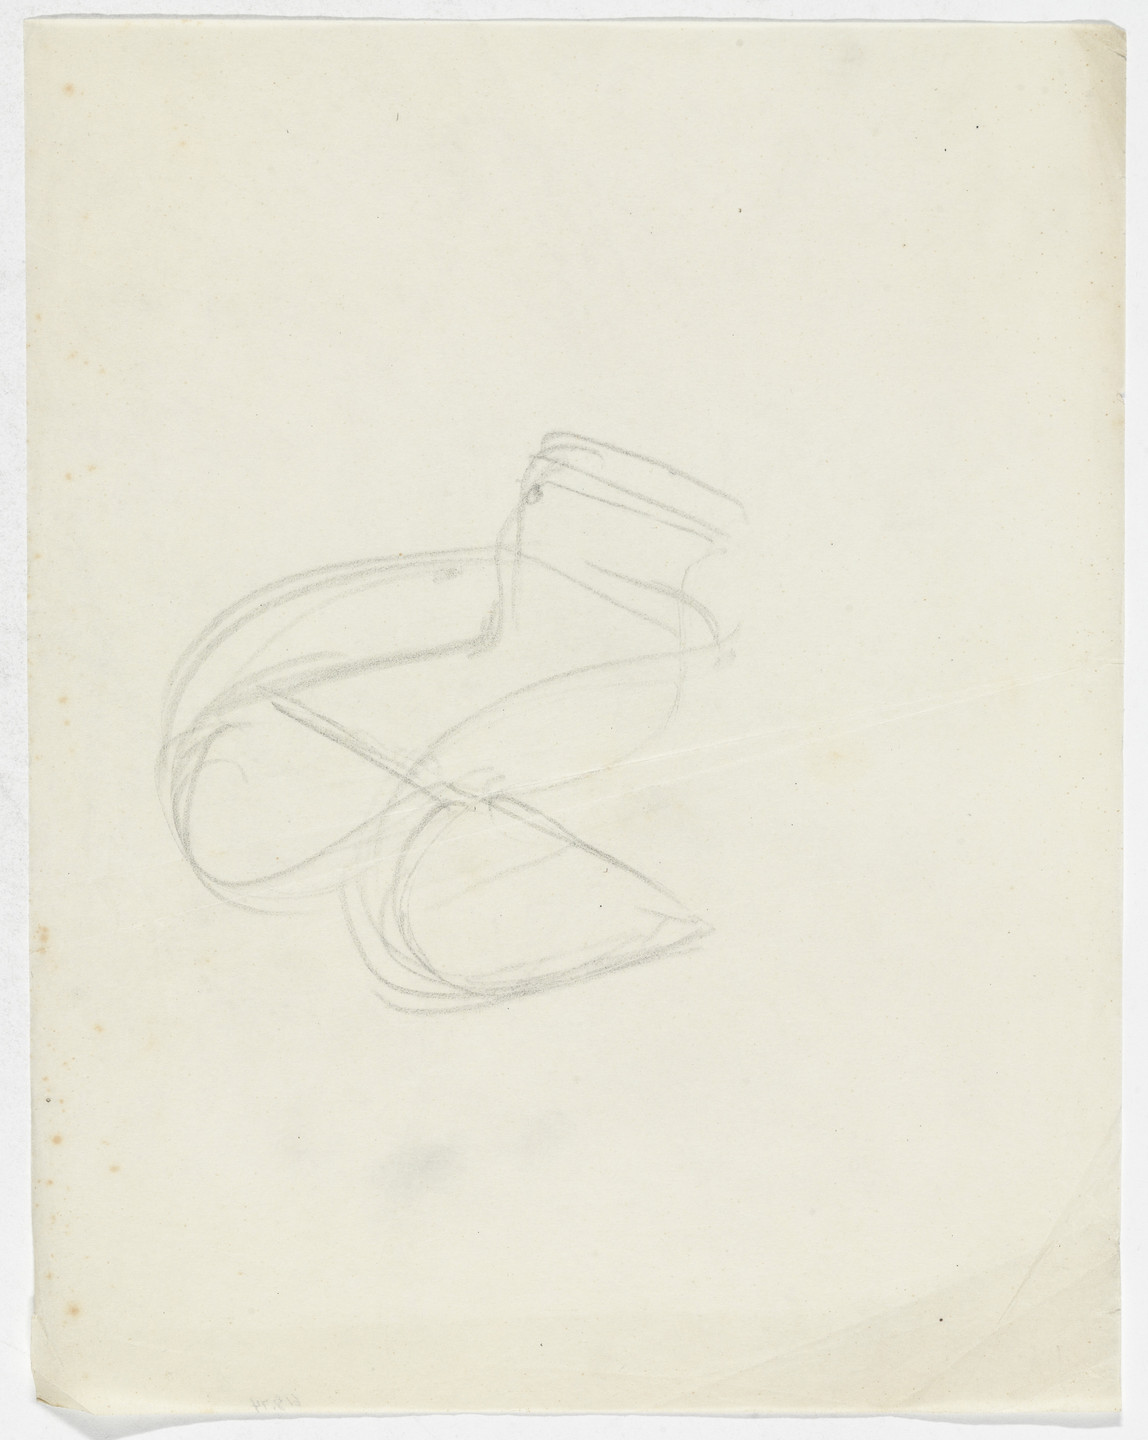 Ludwig Mies van der Rohe. MR20 Chair (Perspective sketch). early 1930s